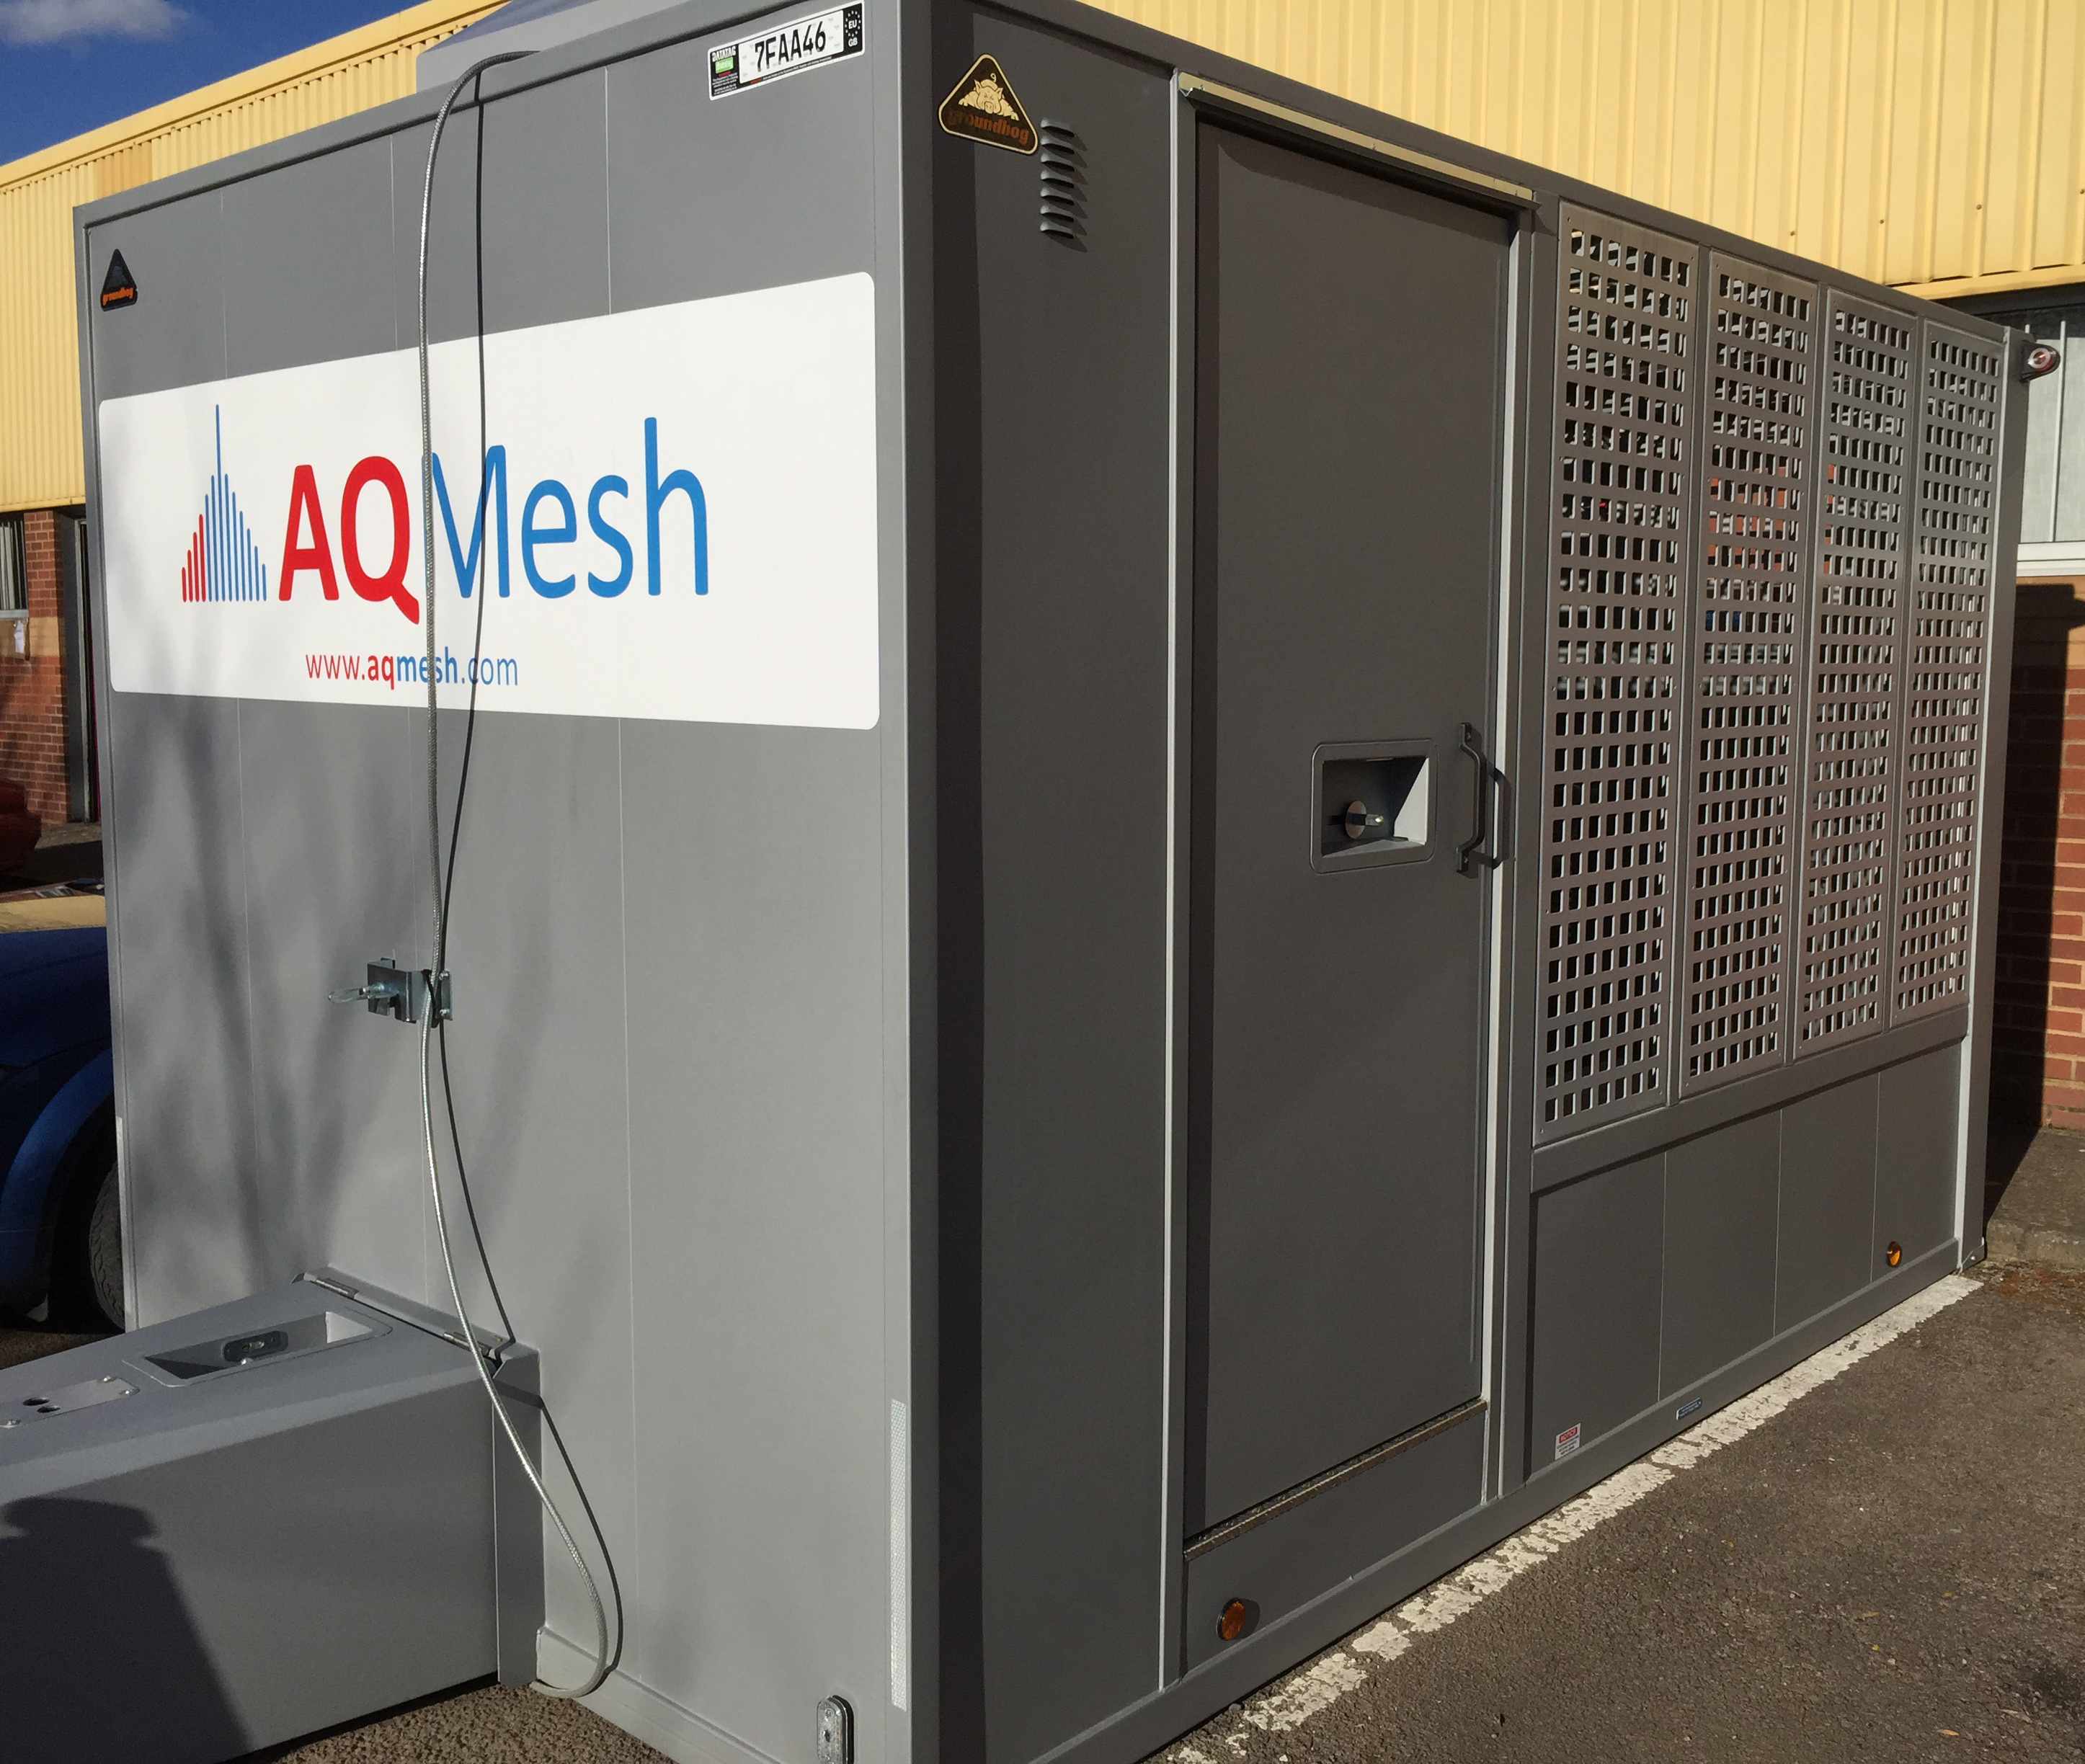 AQMesh: the most reliable air quality monitor?